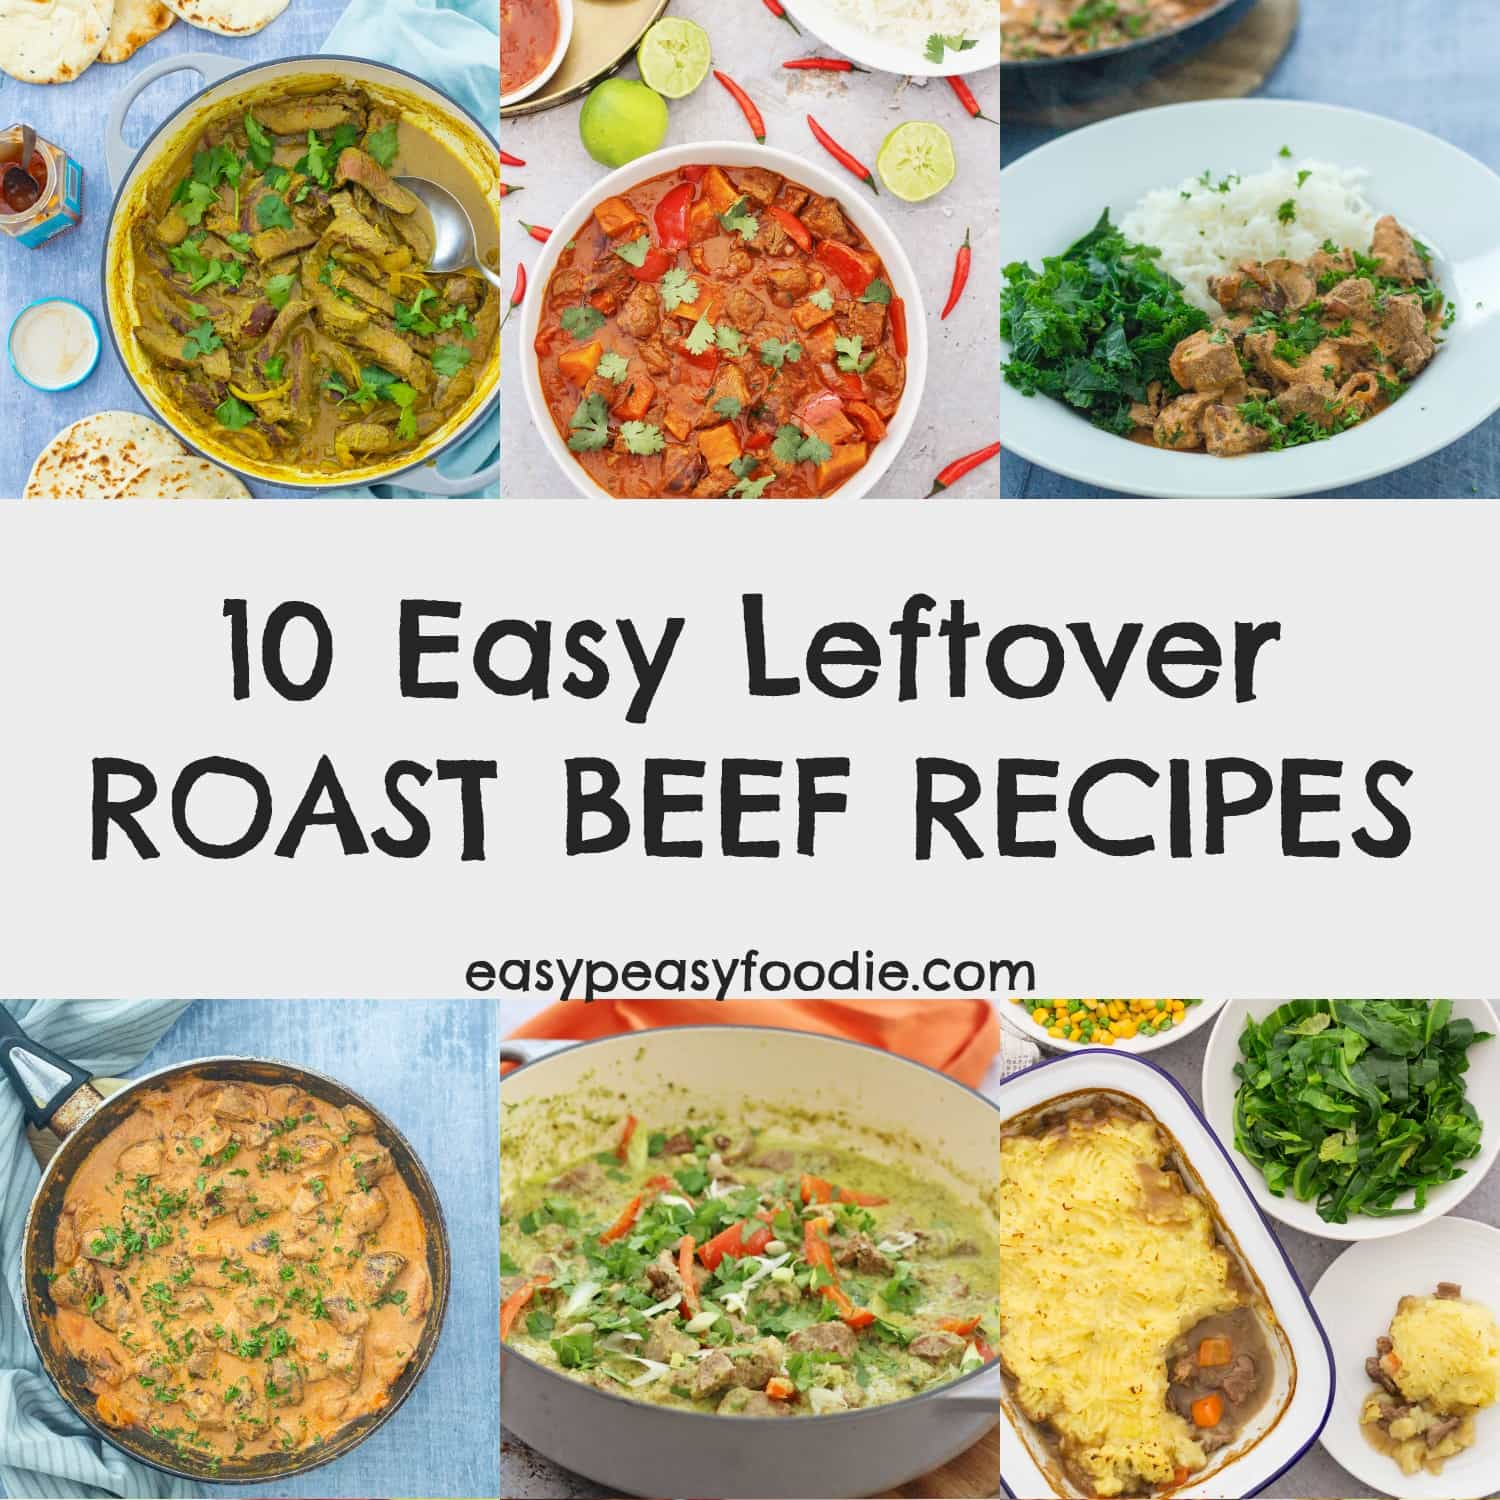 10 Easy Leftover Roast Beef Recipes